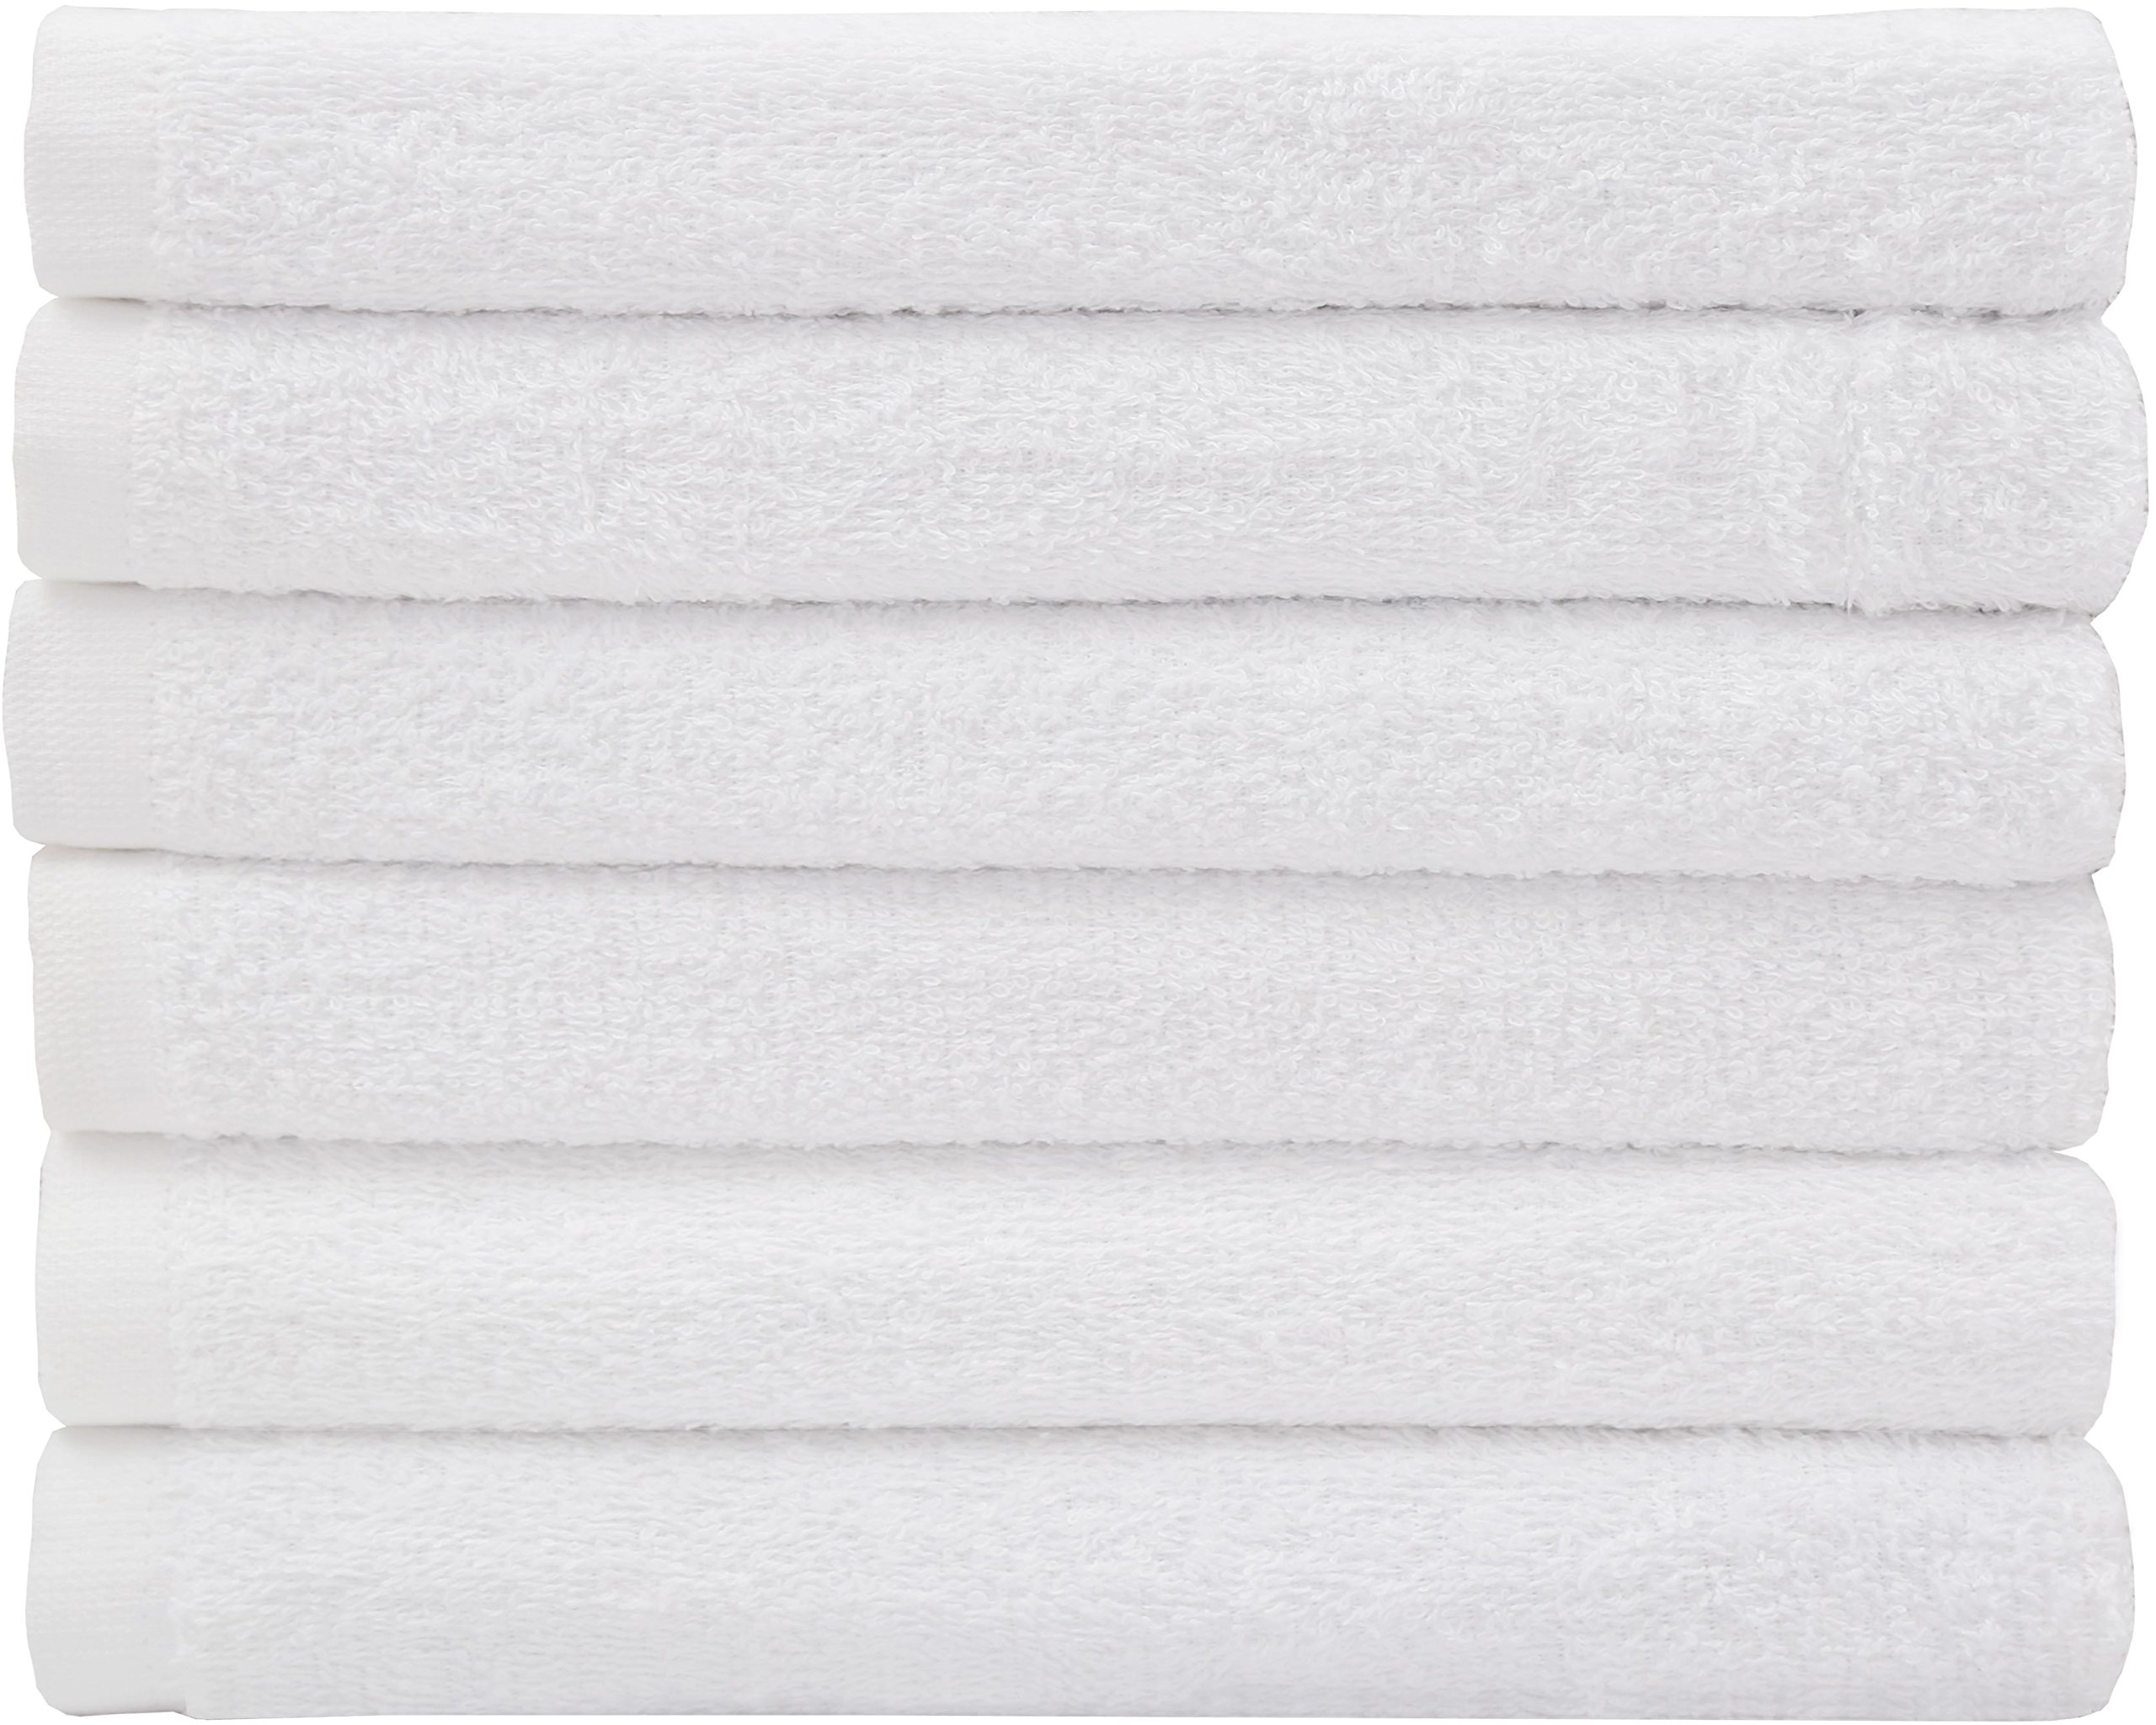 Hotel-Spa-Pool-Gym Cotton Hair & Bath Towel - 6 Pack, White, Super Soft, Easy Care, Ringspun Cotton for Maximum Softness and Absorbency (22''x 44'') By Utopia Towel